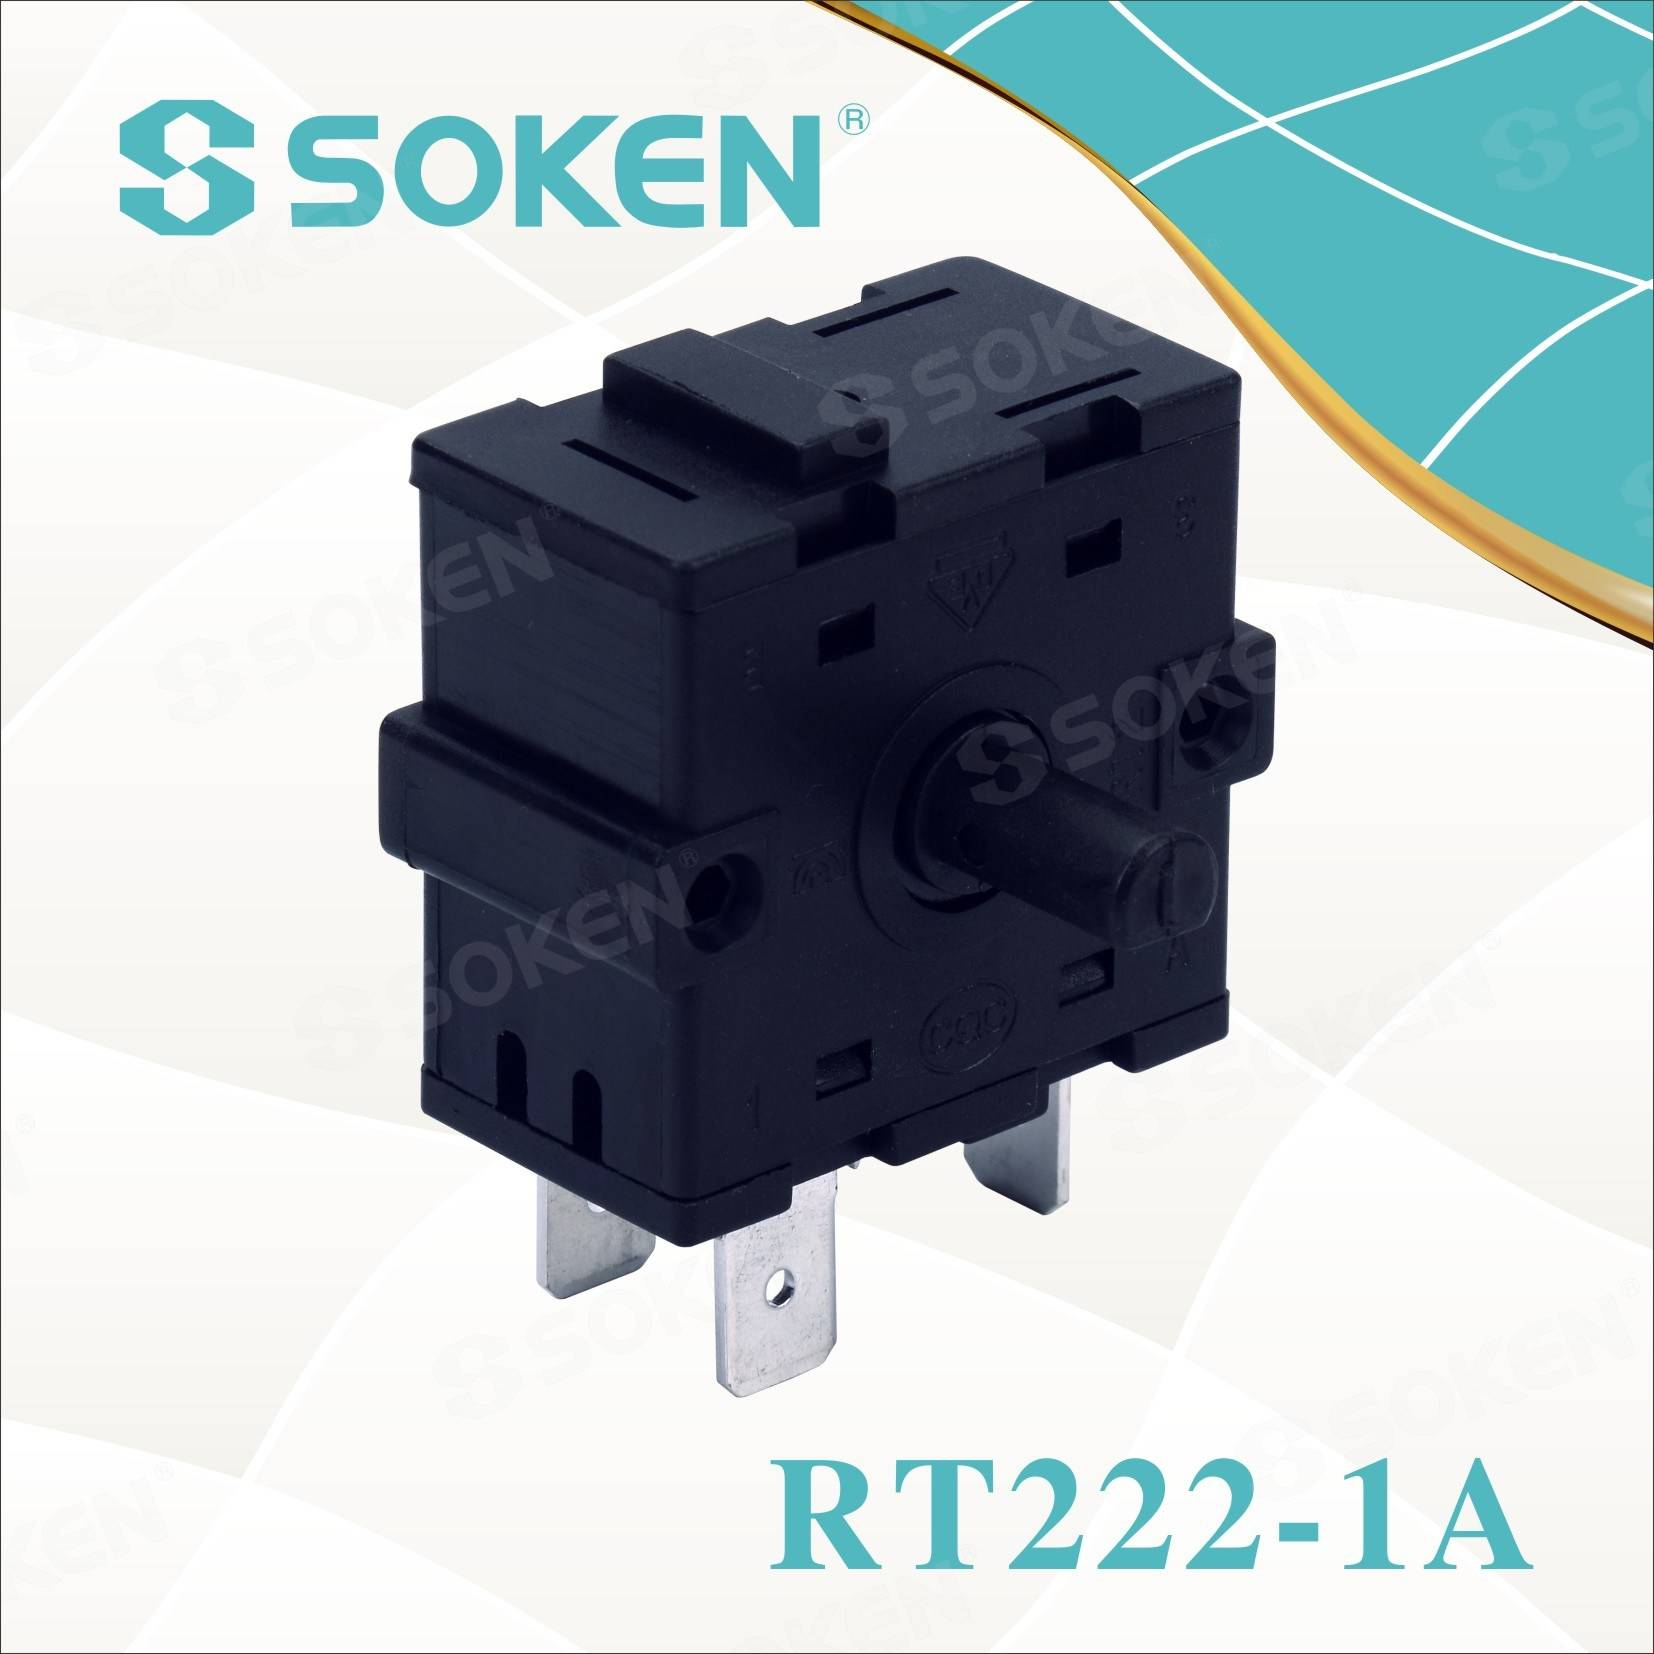 Reasonable price for Safety Warning Light Belt -